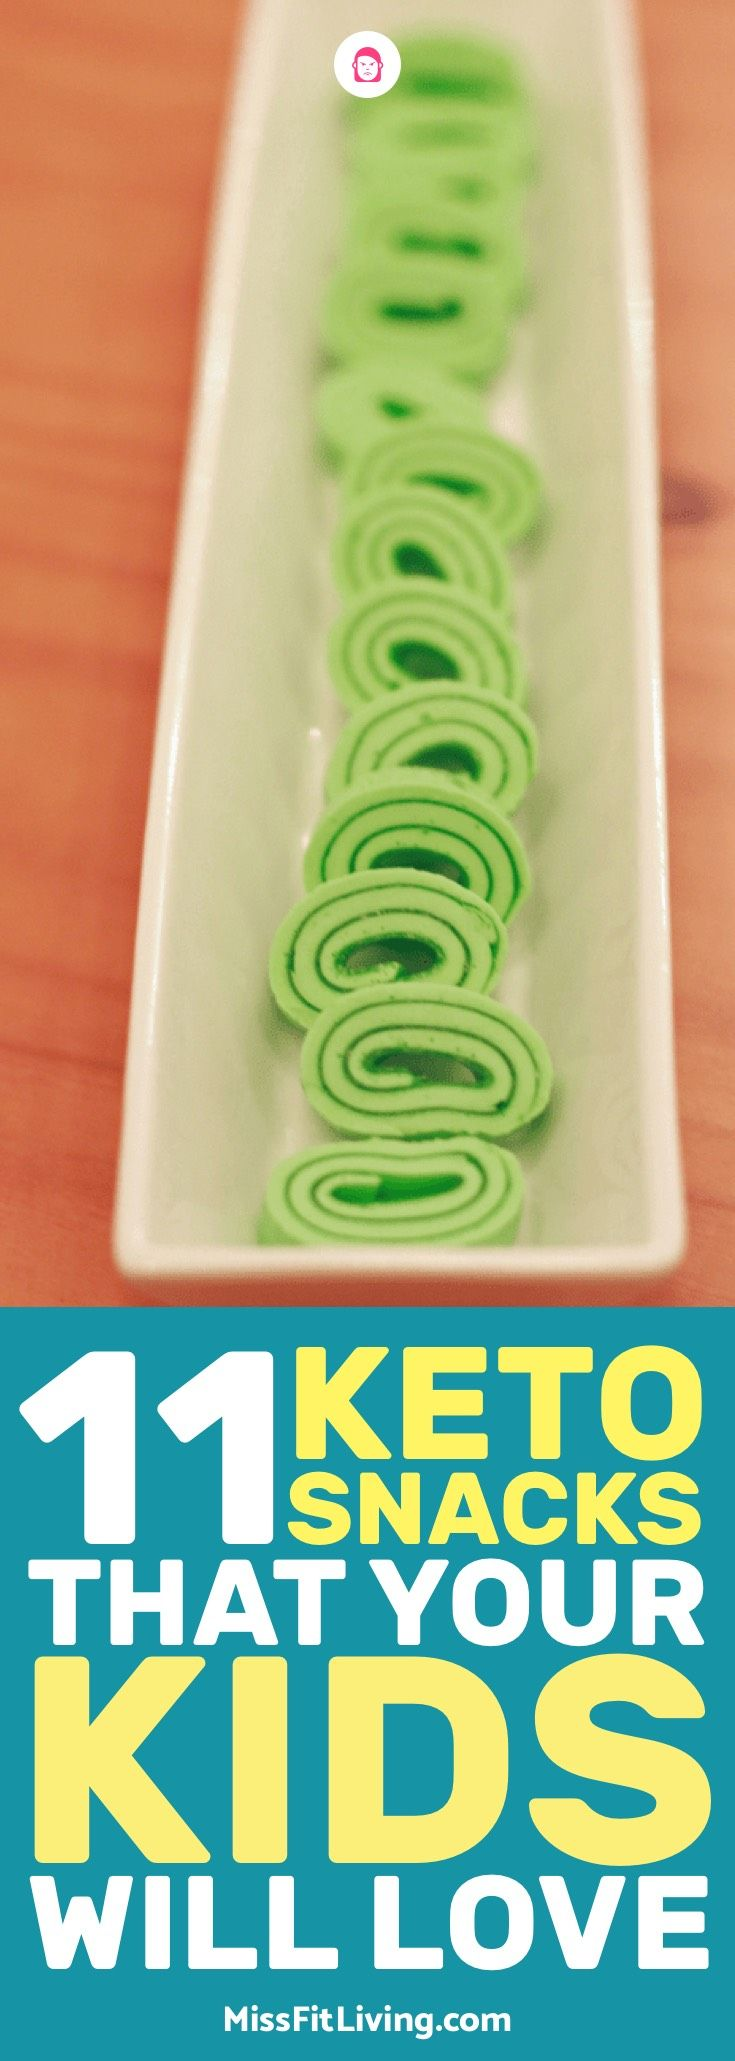 Who doesn't love snacks? Kids really love snacks but it's important that you keep them healthy. These ketogenic snacks are great for kids and adults!